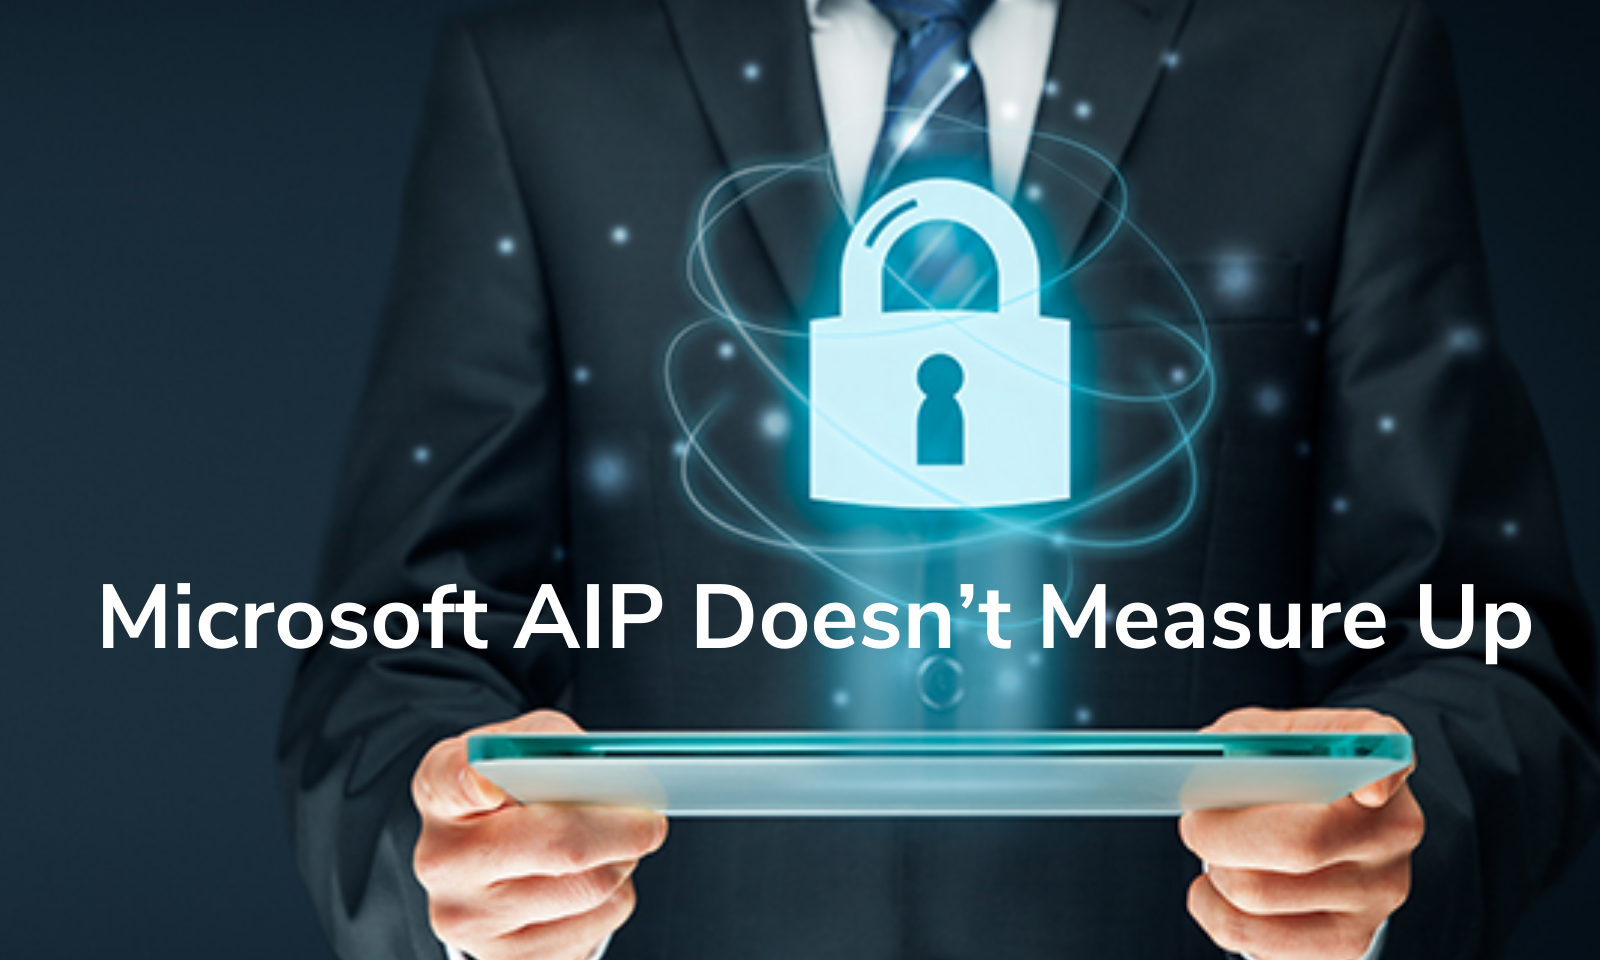 Microsoft AIP Doesn't Measure Up